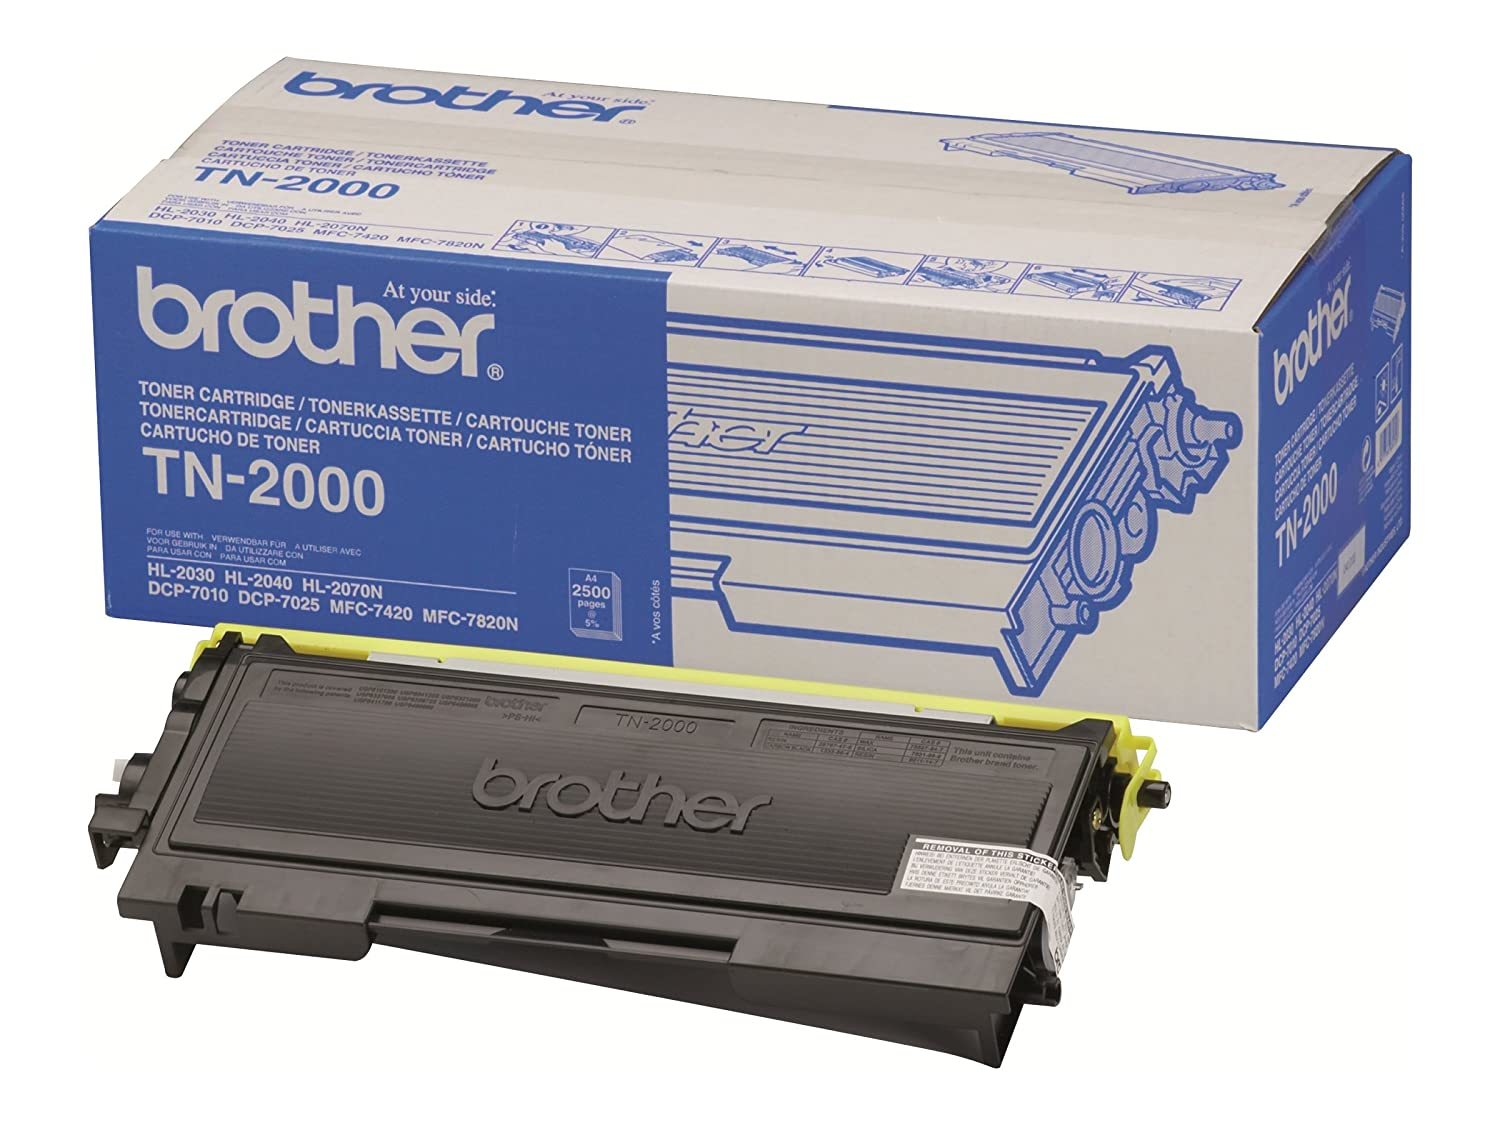 Brother TN-2000 | Cartouche de toner original | Noir 854760